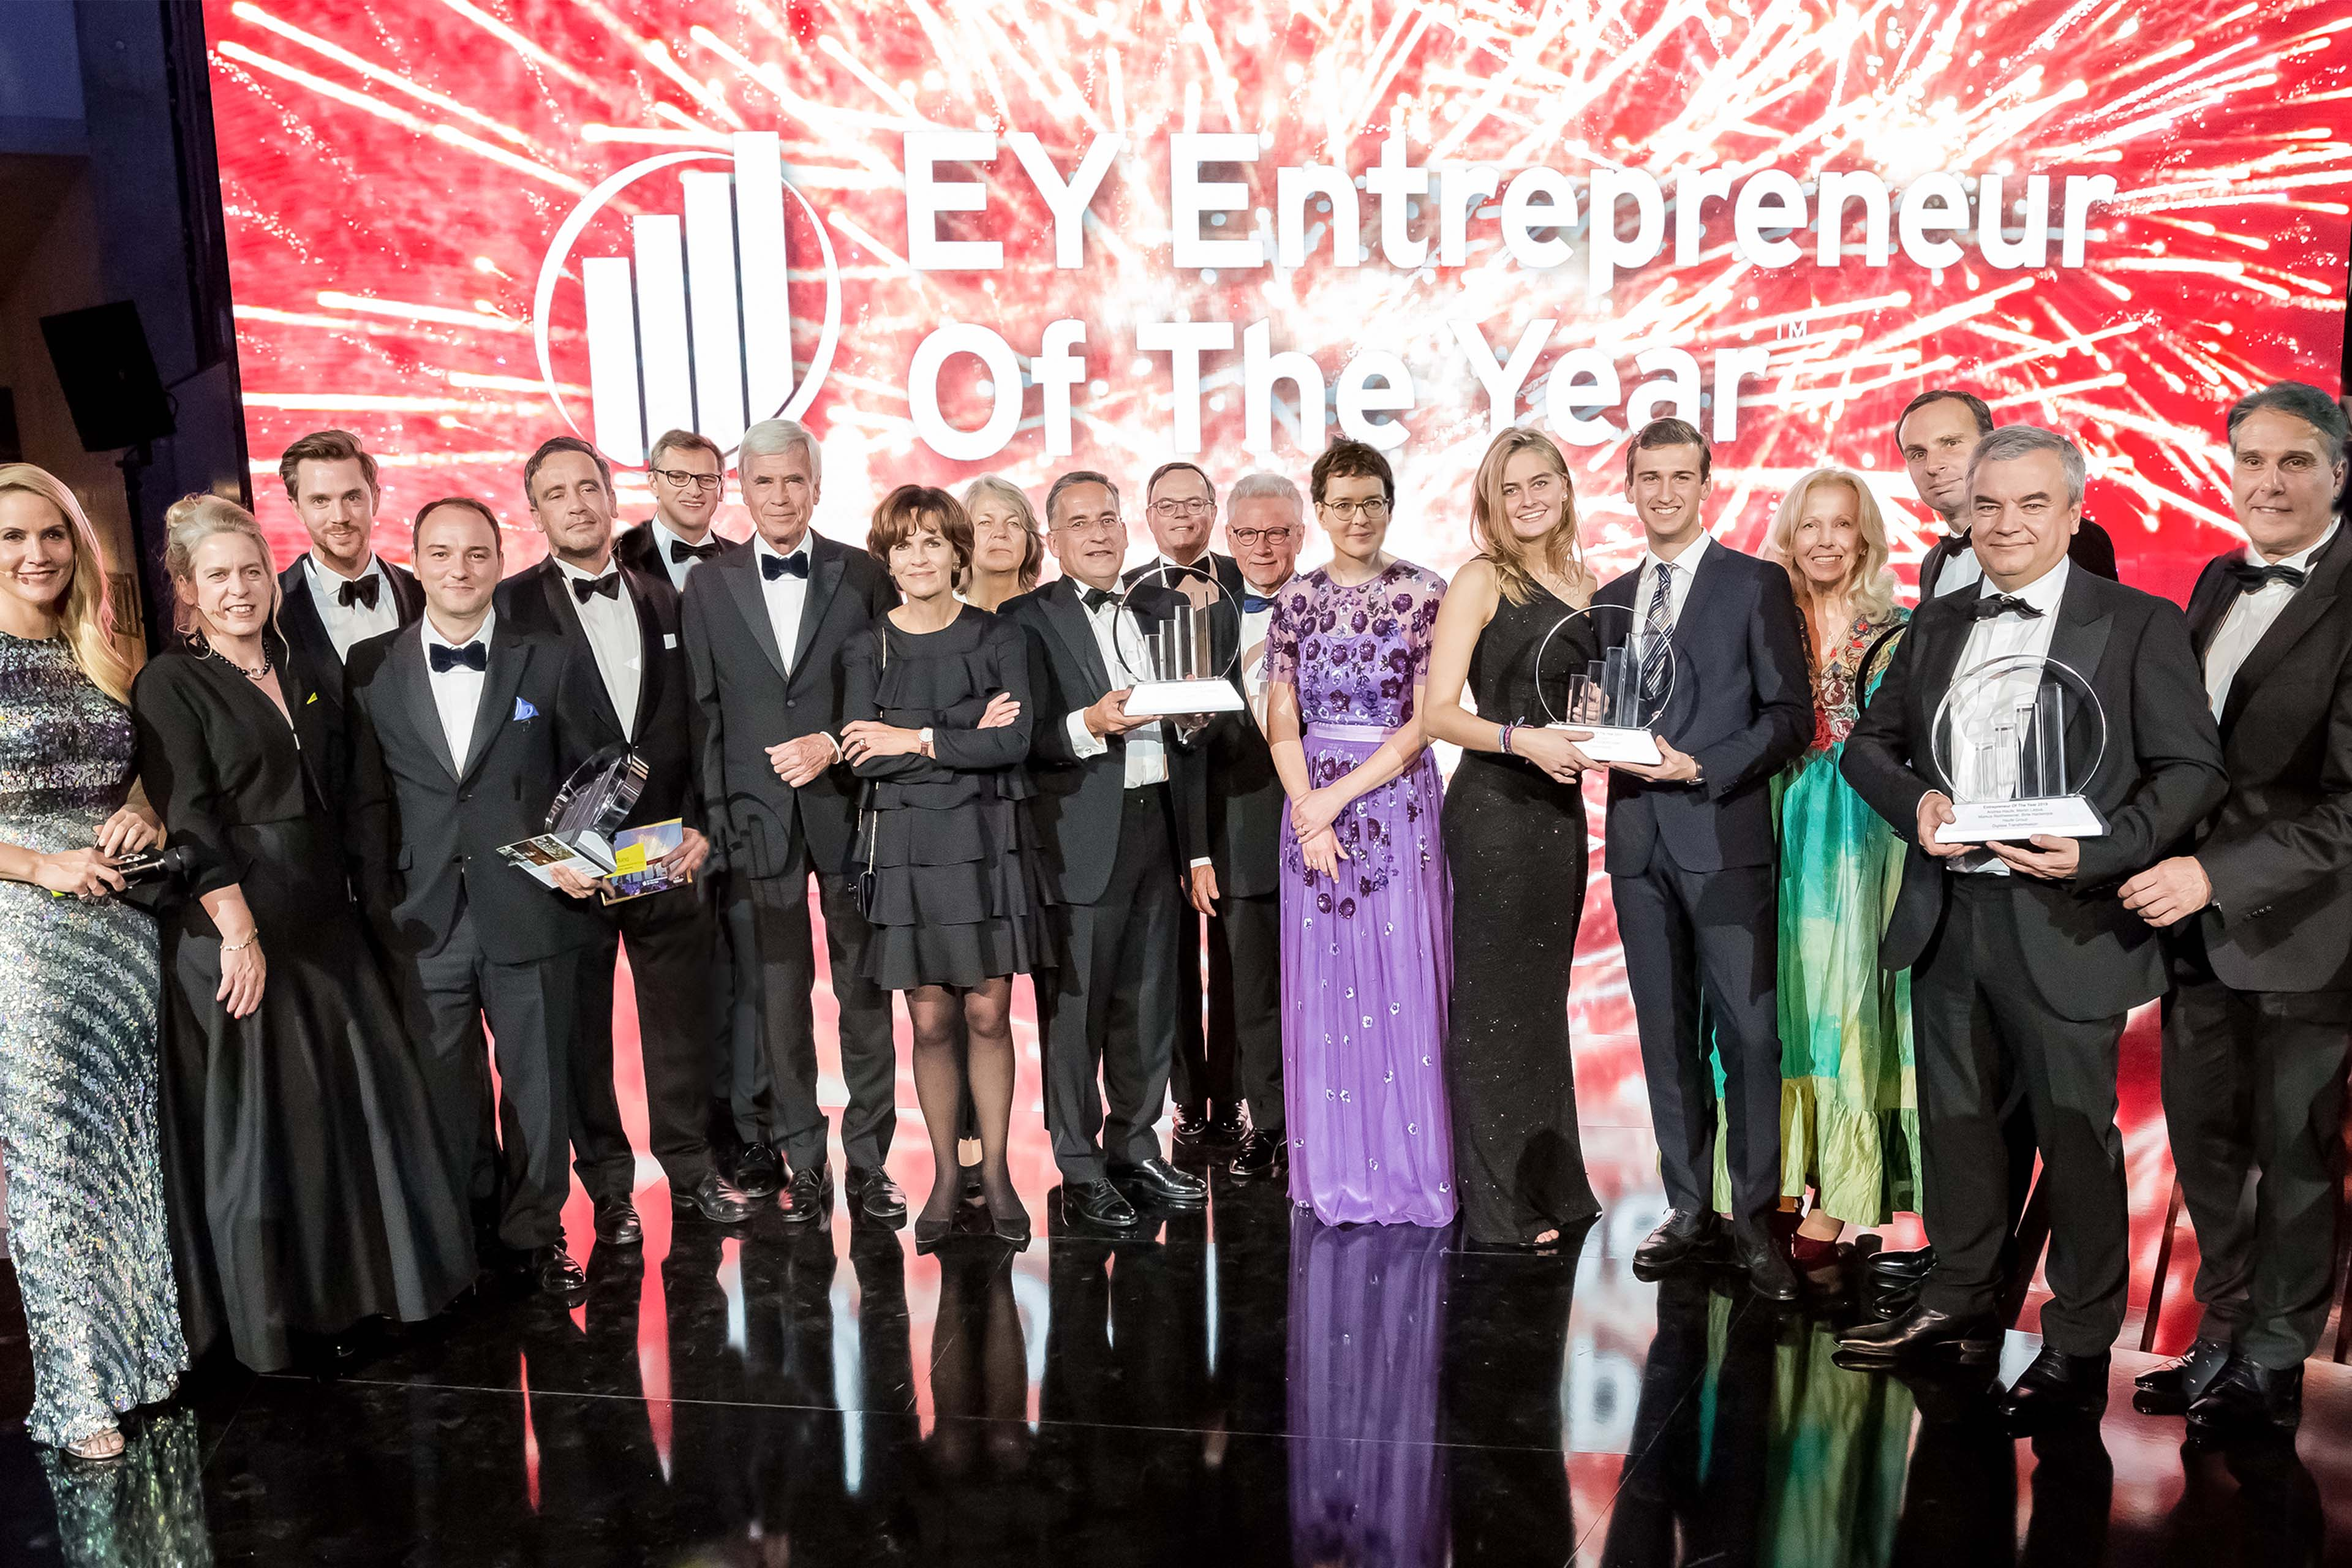 Thumbnail of https://www.ey.com/de_de/entrepreneur-of-the-year-deutschland/die-besten-entrepreneure-deutschlands-2019